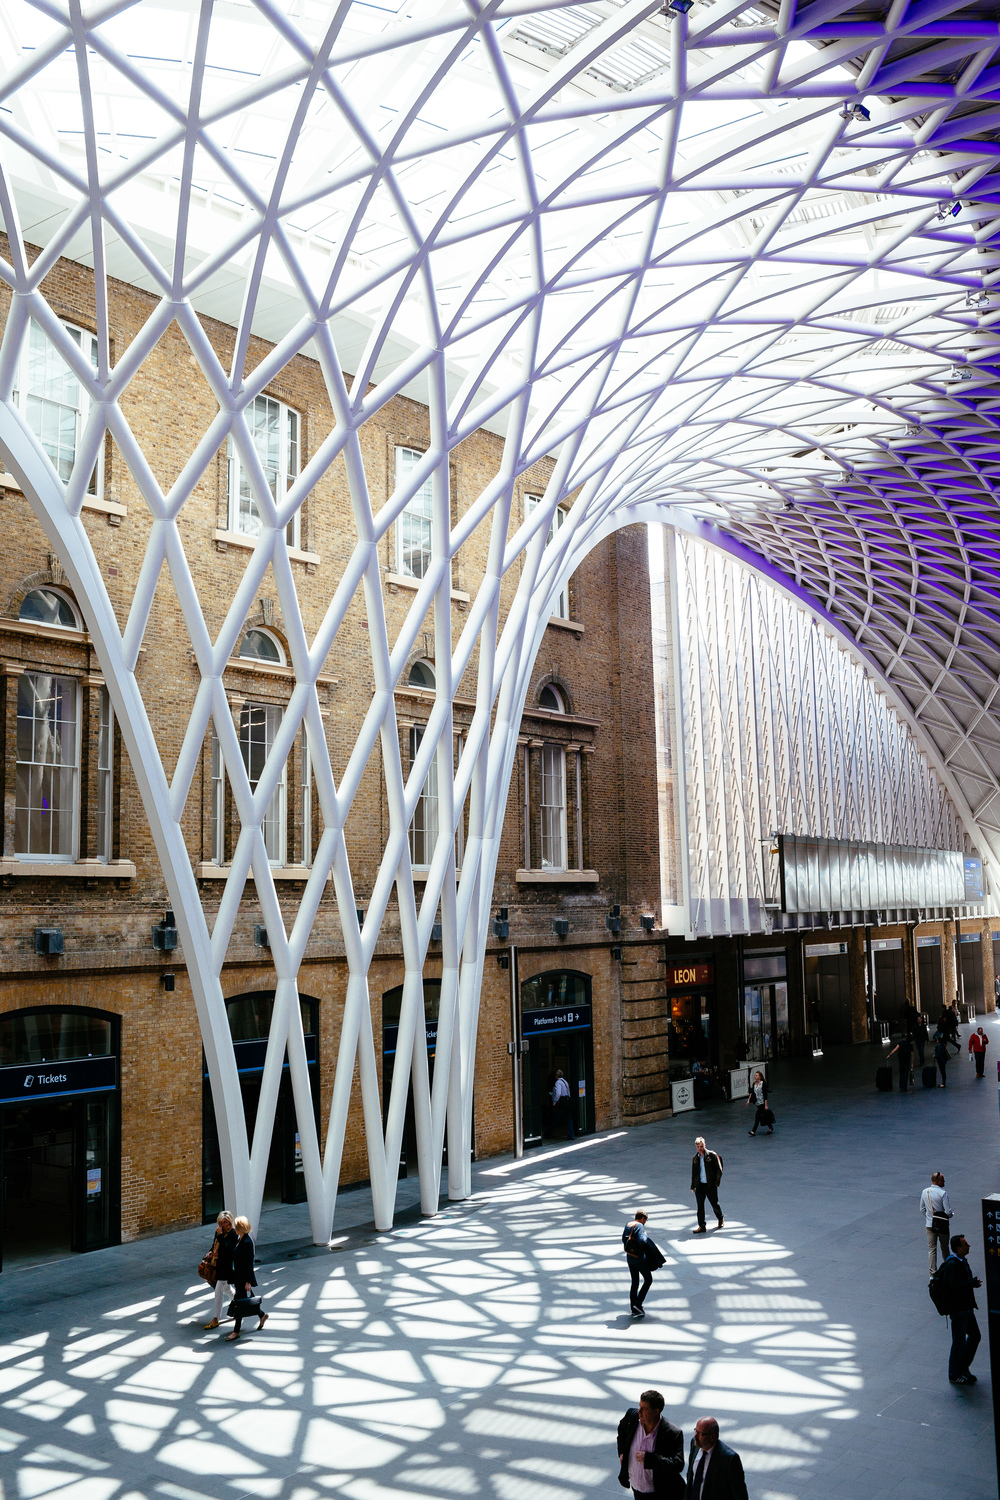 King's Cross N1